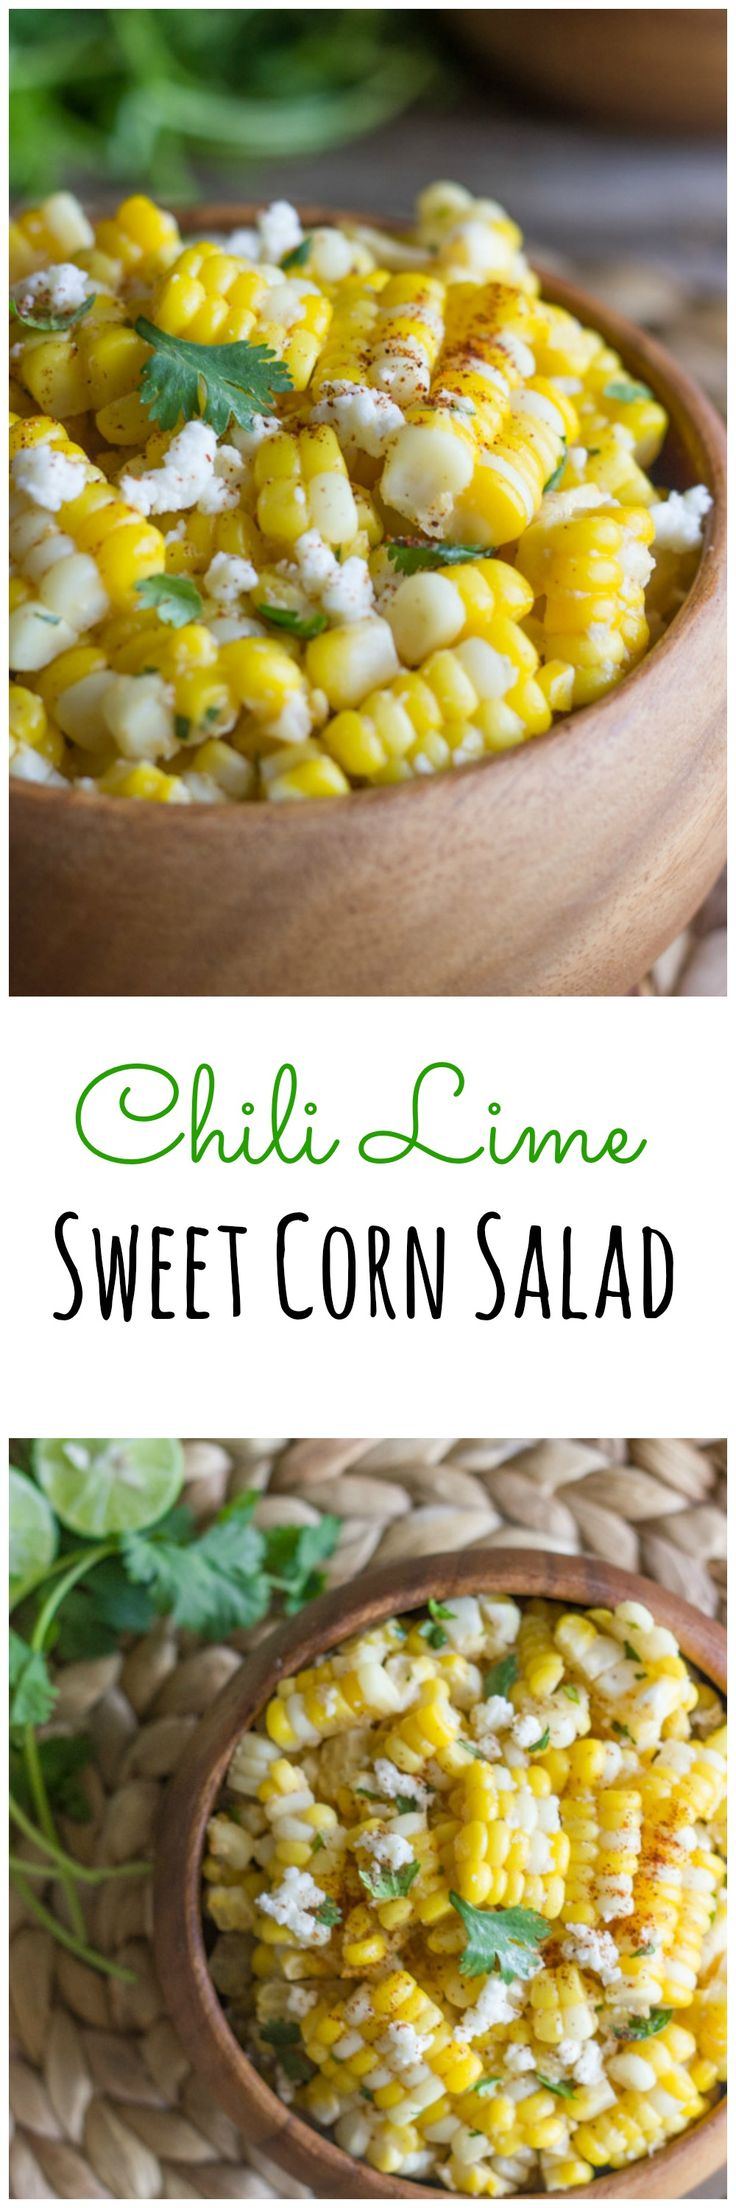 Chili Lime Sweet Corn Salad